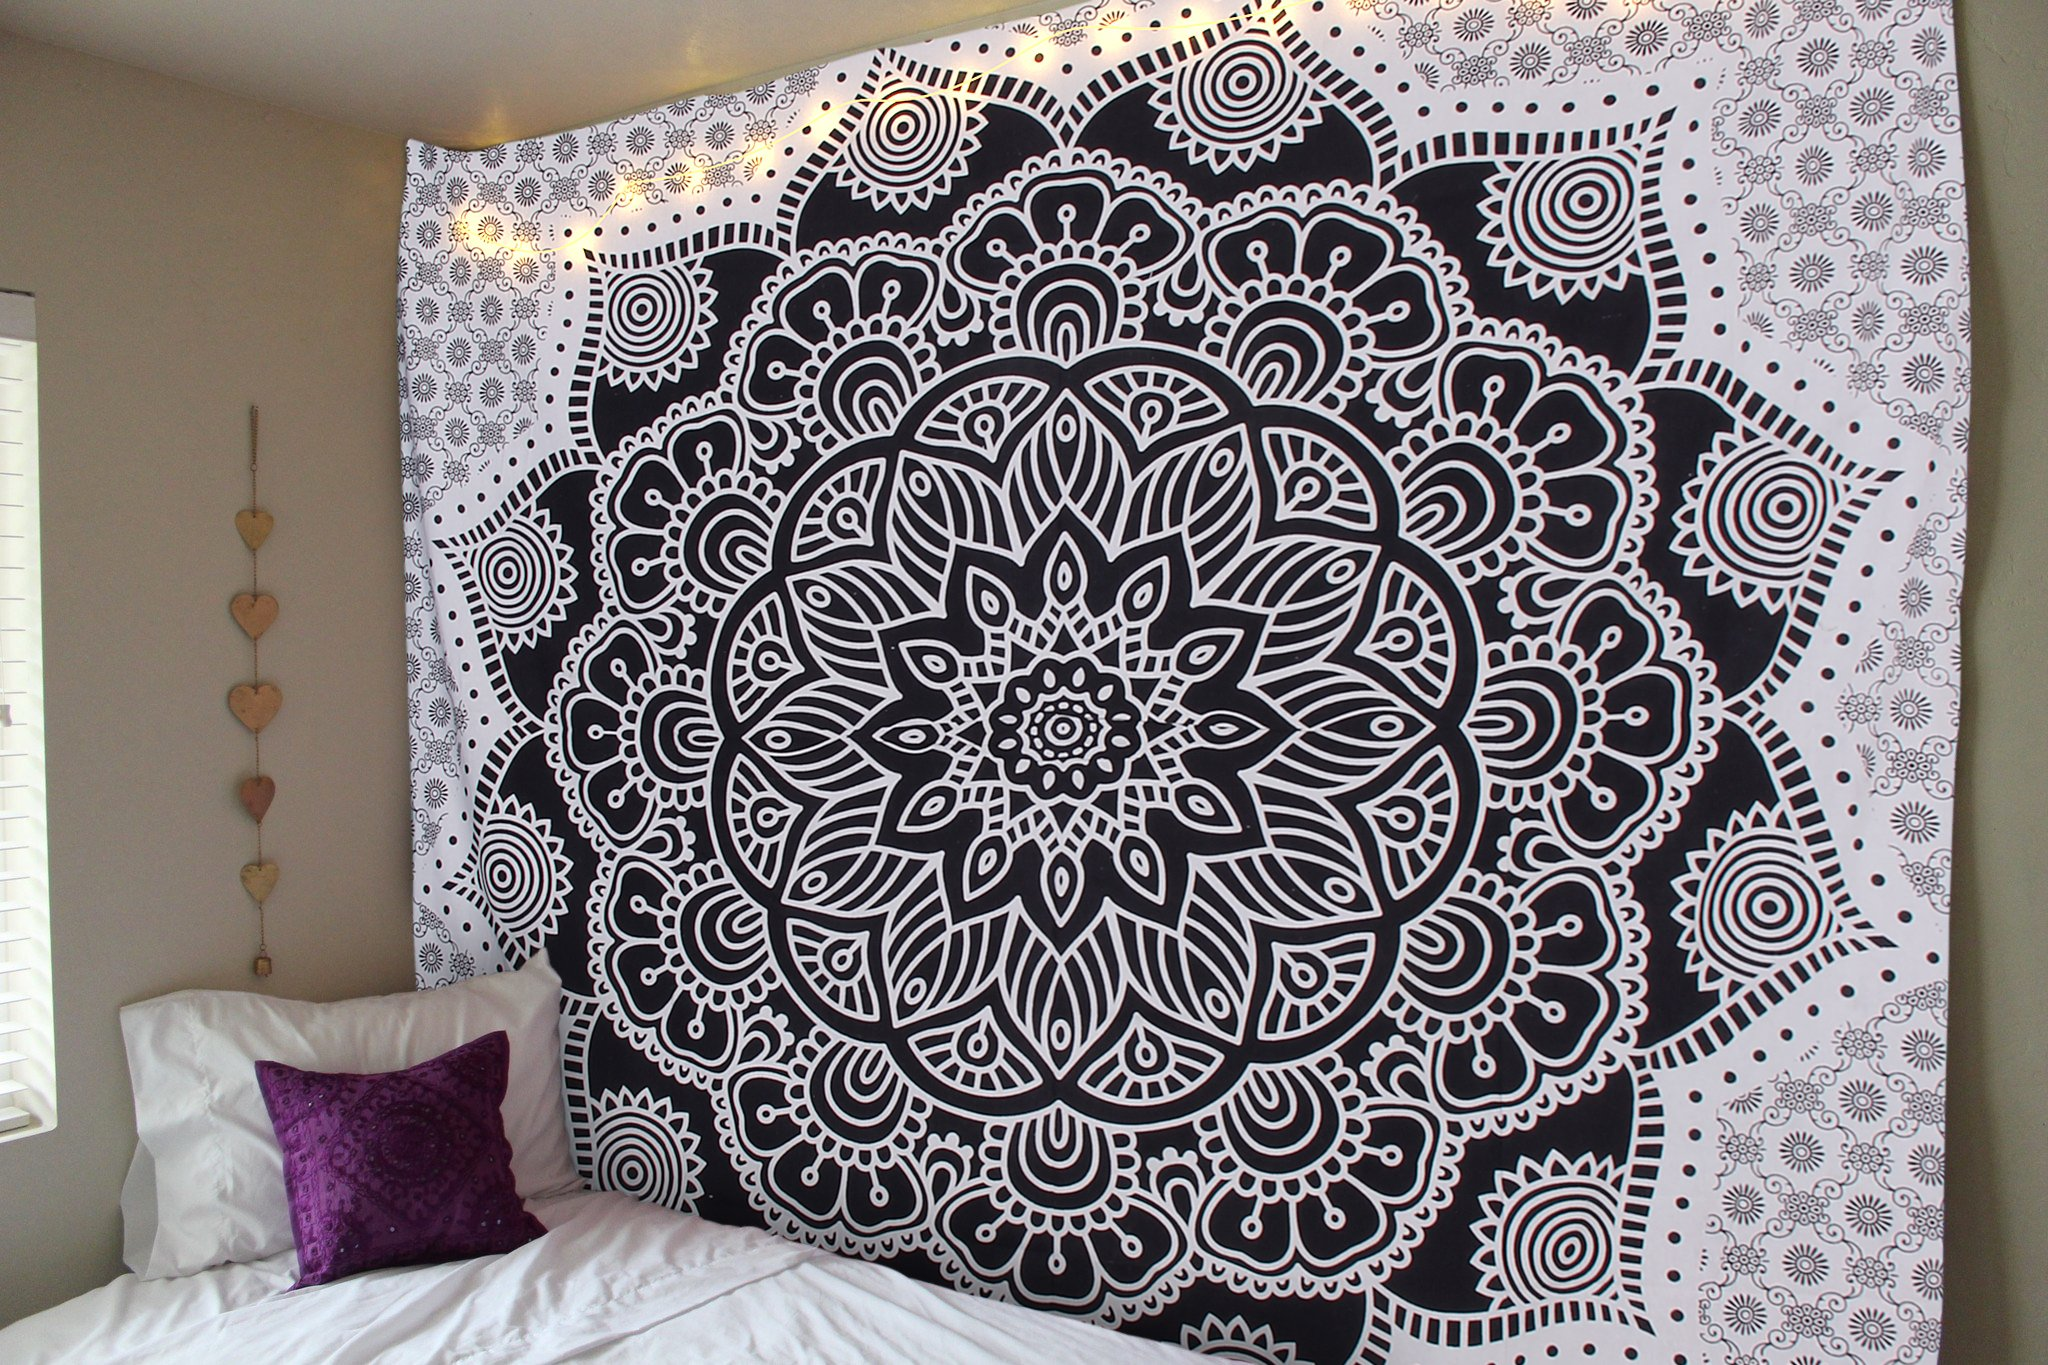 RSG Venture Black and White Mandala Tapestry Black and White ombre tapestry Bohemian Tapestry Mandala Hippie Grey and white Mandala Tapestry Dorm Decor Bohemian Bedspread Bedding Beach Tapestry by